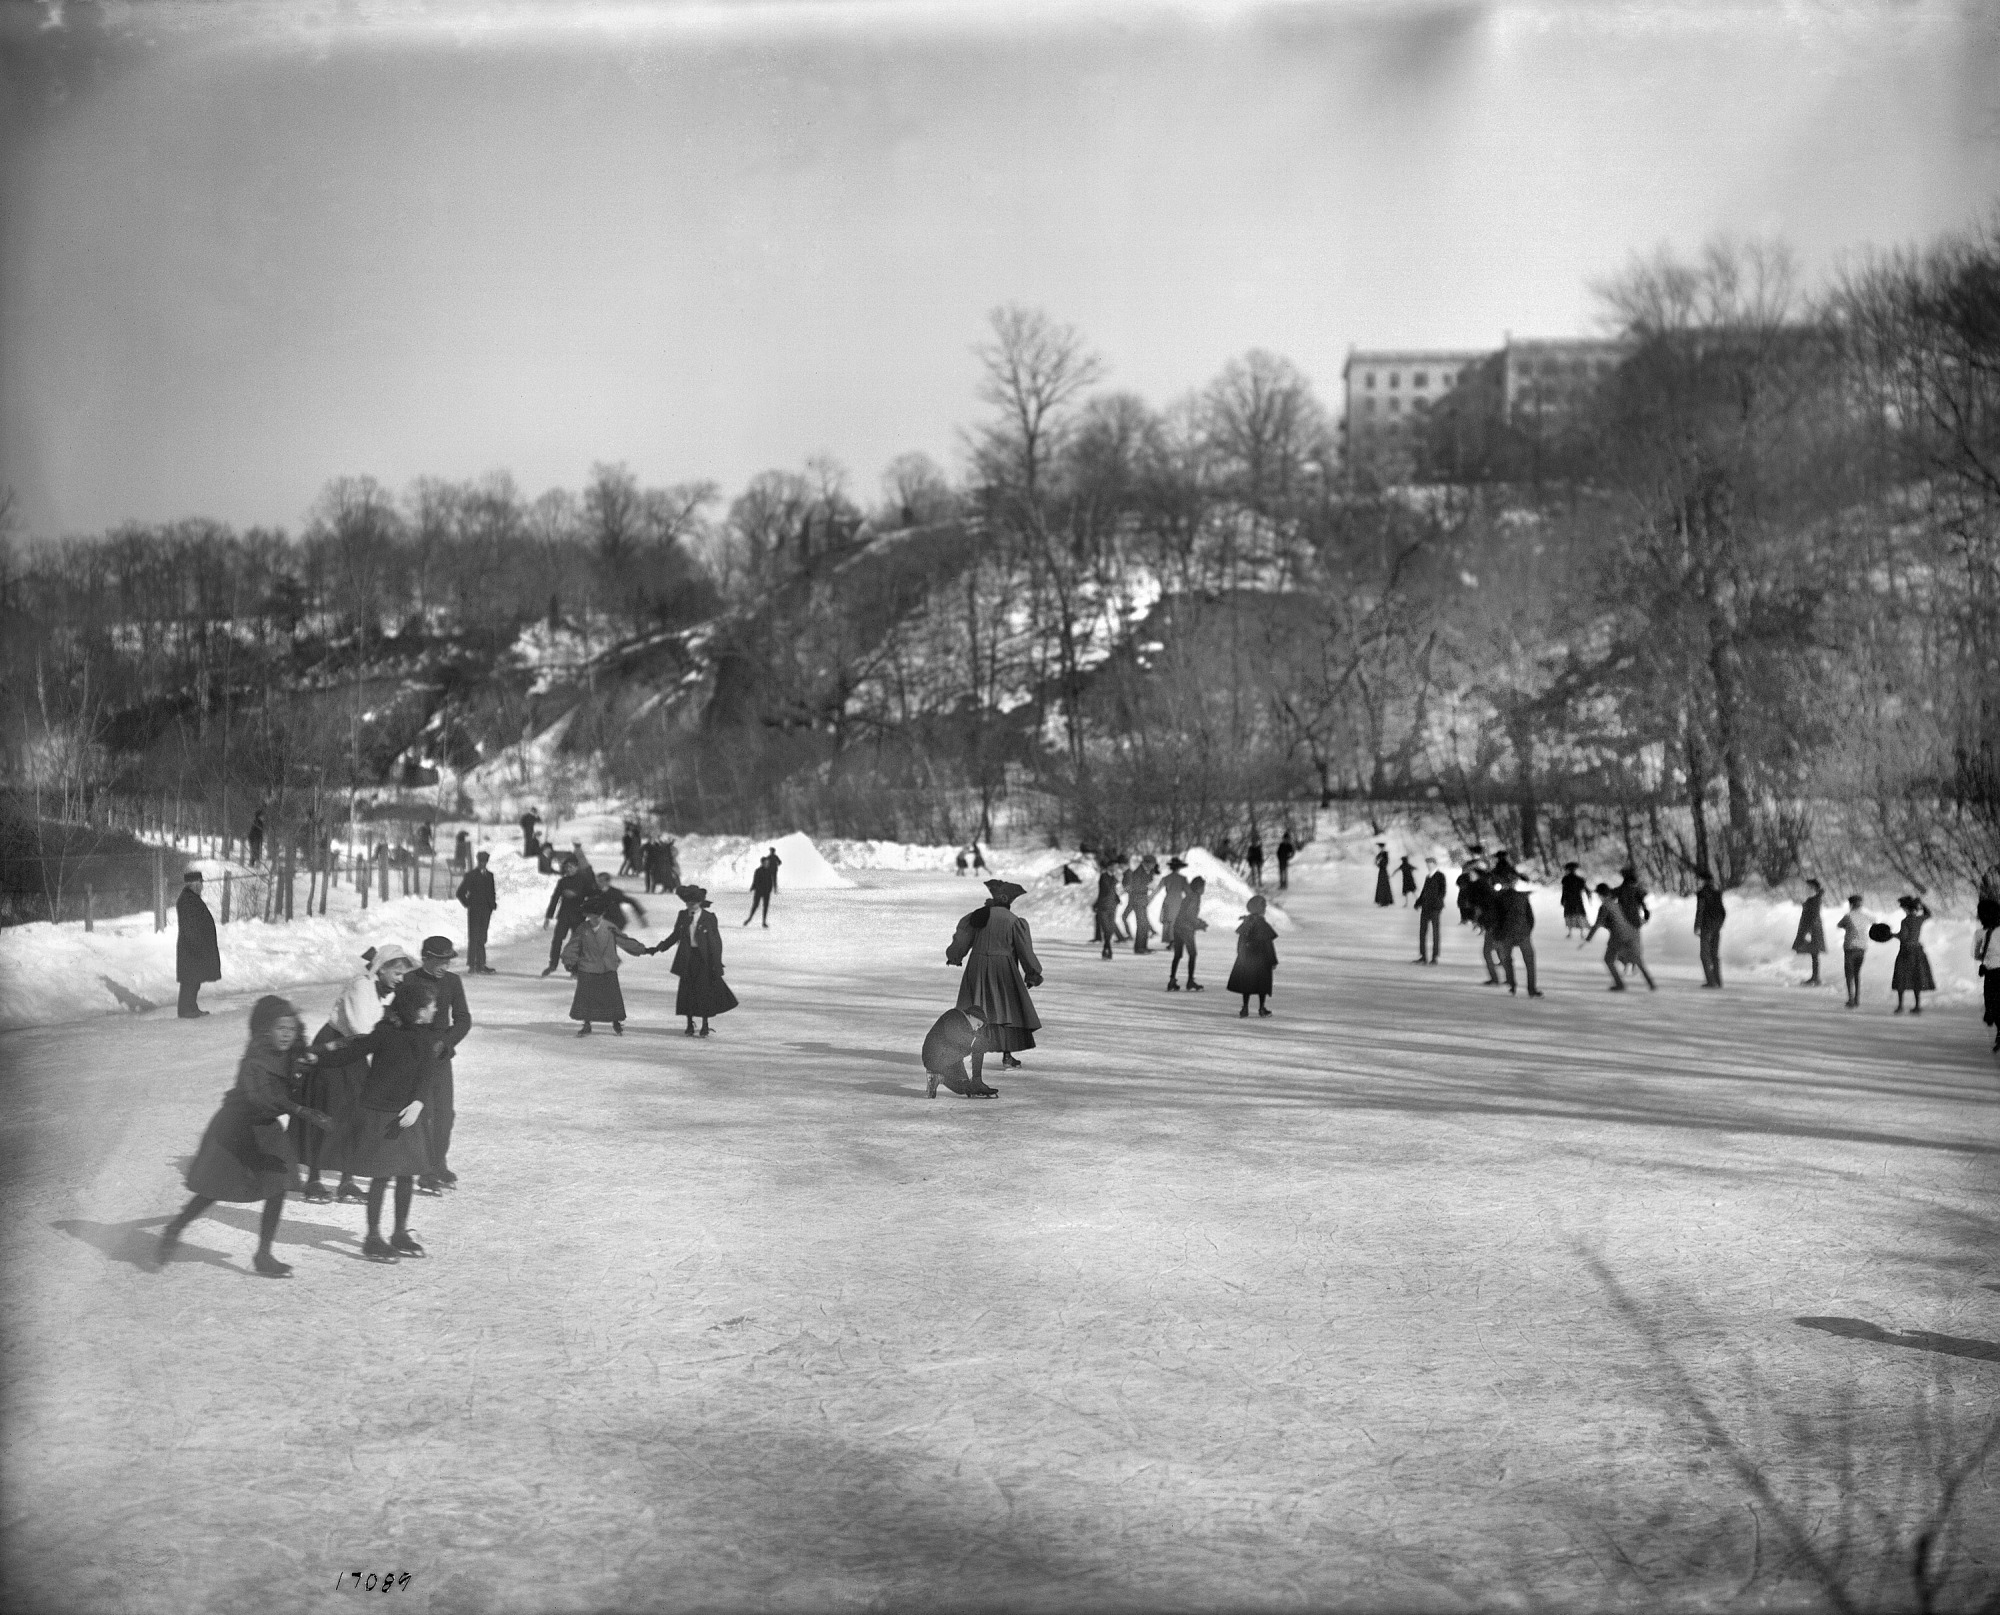 Skaters on Rock Creek, by Unknown, c. 1905, Smithsonian Archives - History Div, 17089 or MAH-17089.